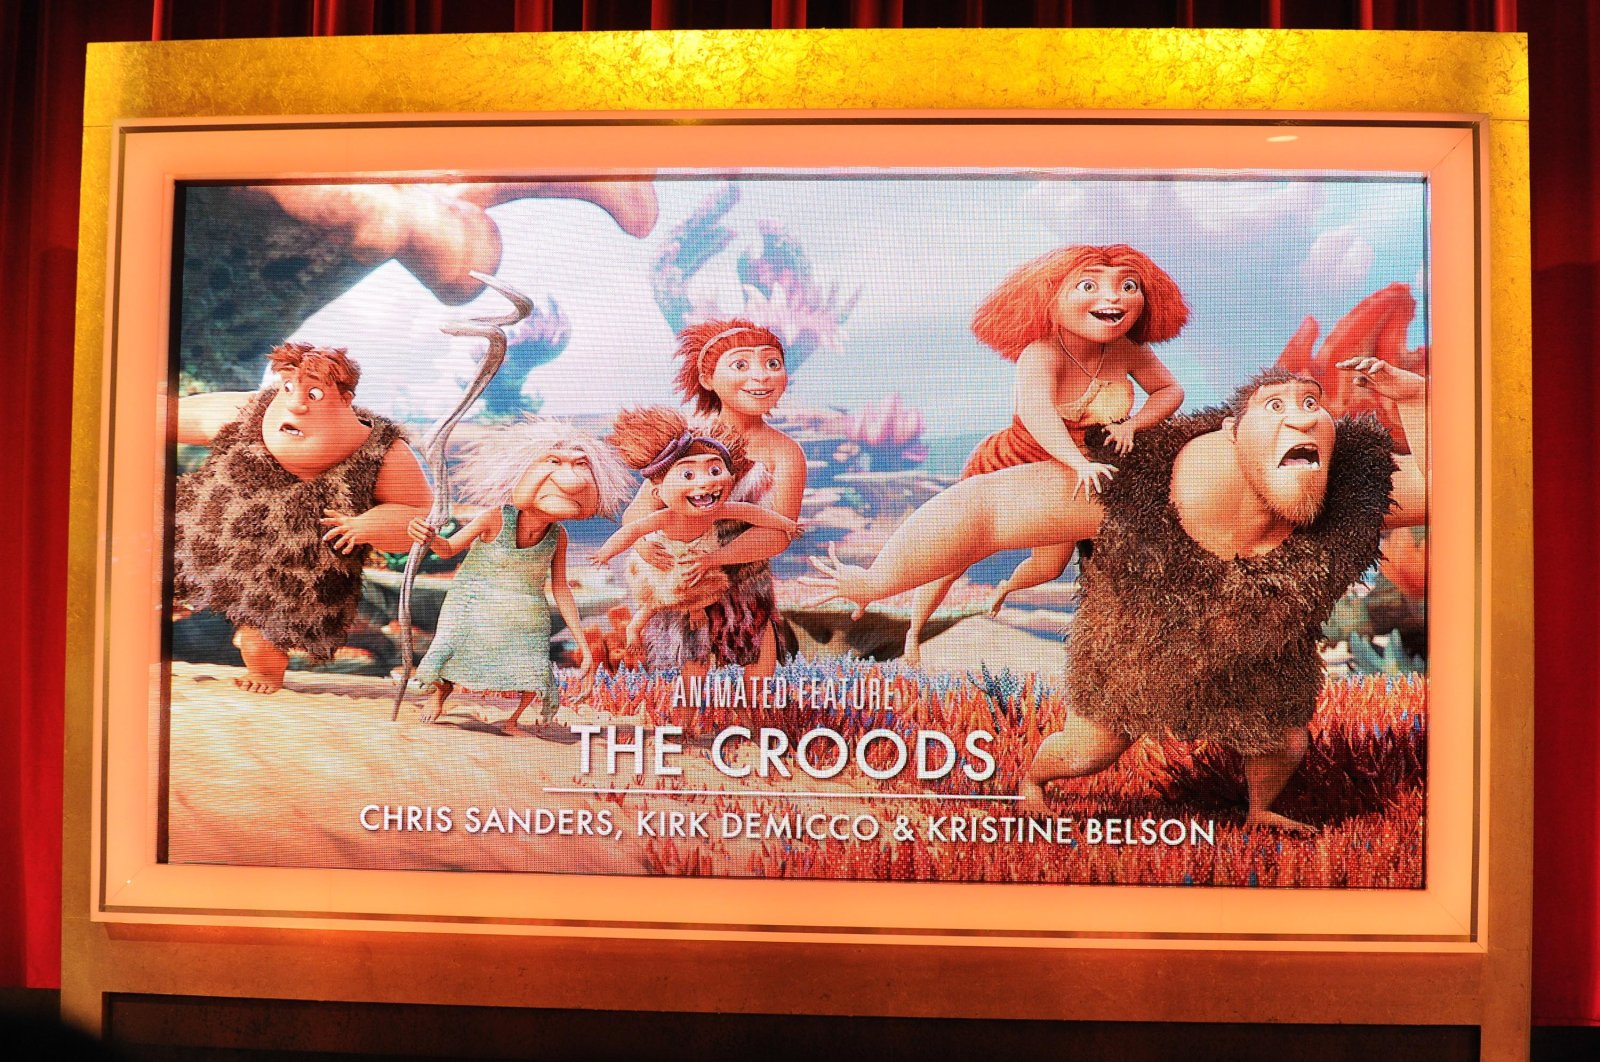 """A giant screen shows """"The Croods"""" as the Oscar nominee for Best Animated Feature at the 86th Academy Awards Nominations Announcement at AMPAS Samuel Goldwyn Theater on Jan. 16, 2014 in Beverly Hills, California.  (Photo by Allen Berezovsky/WireImage via Getty)"""